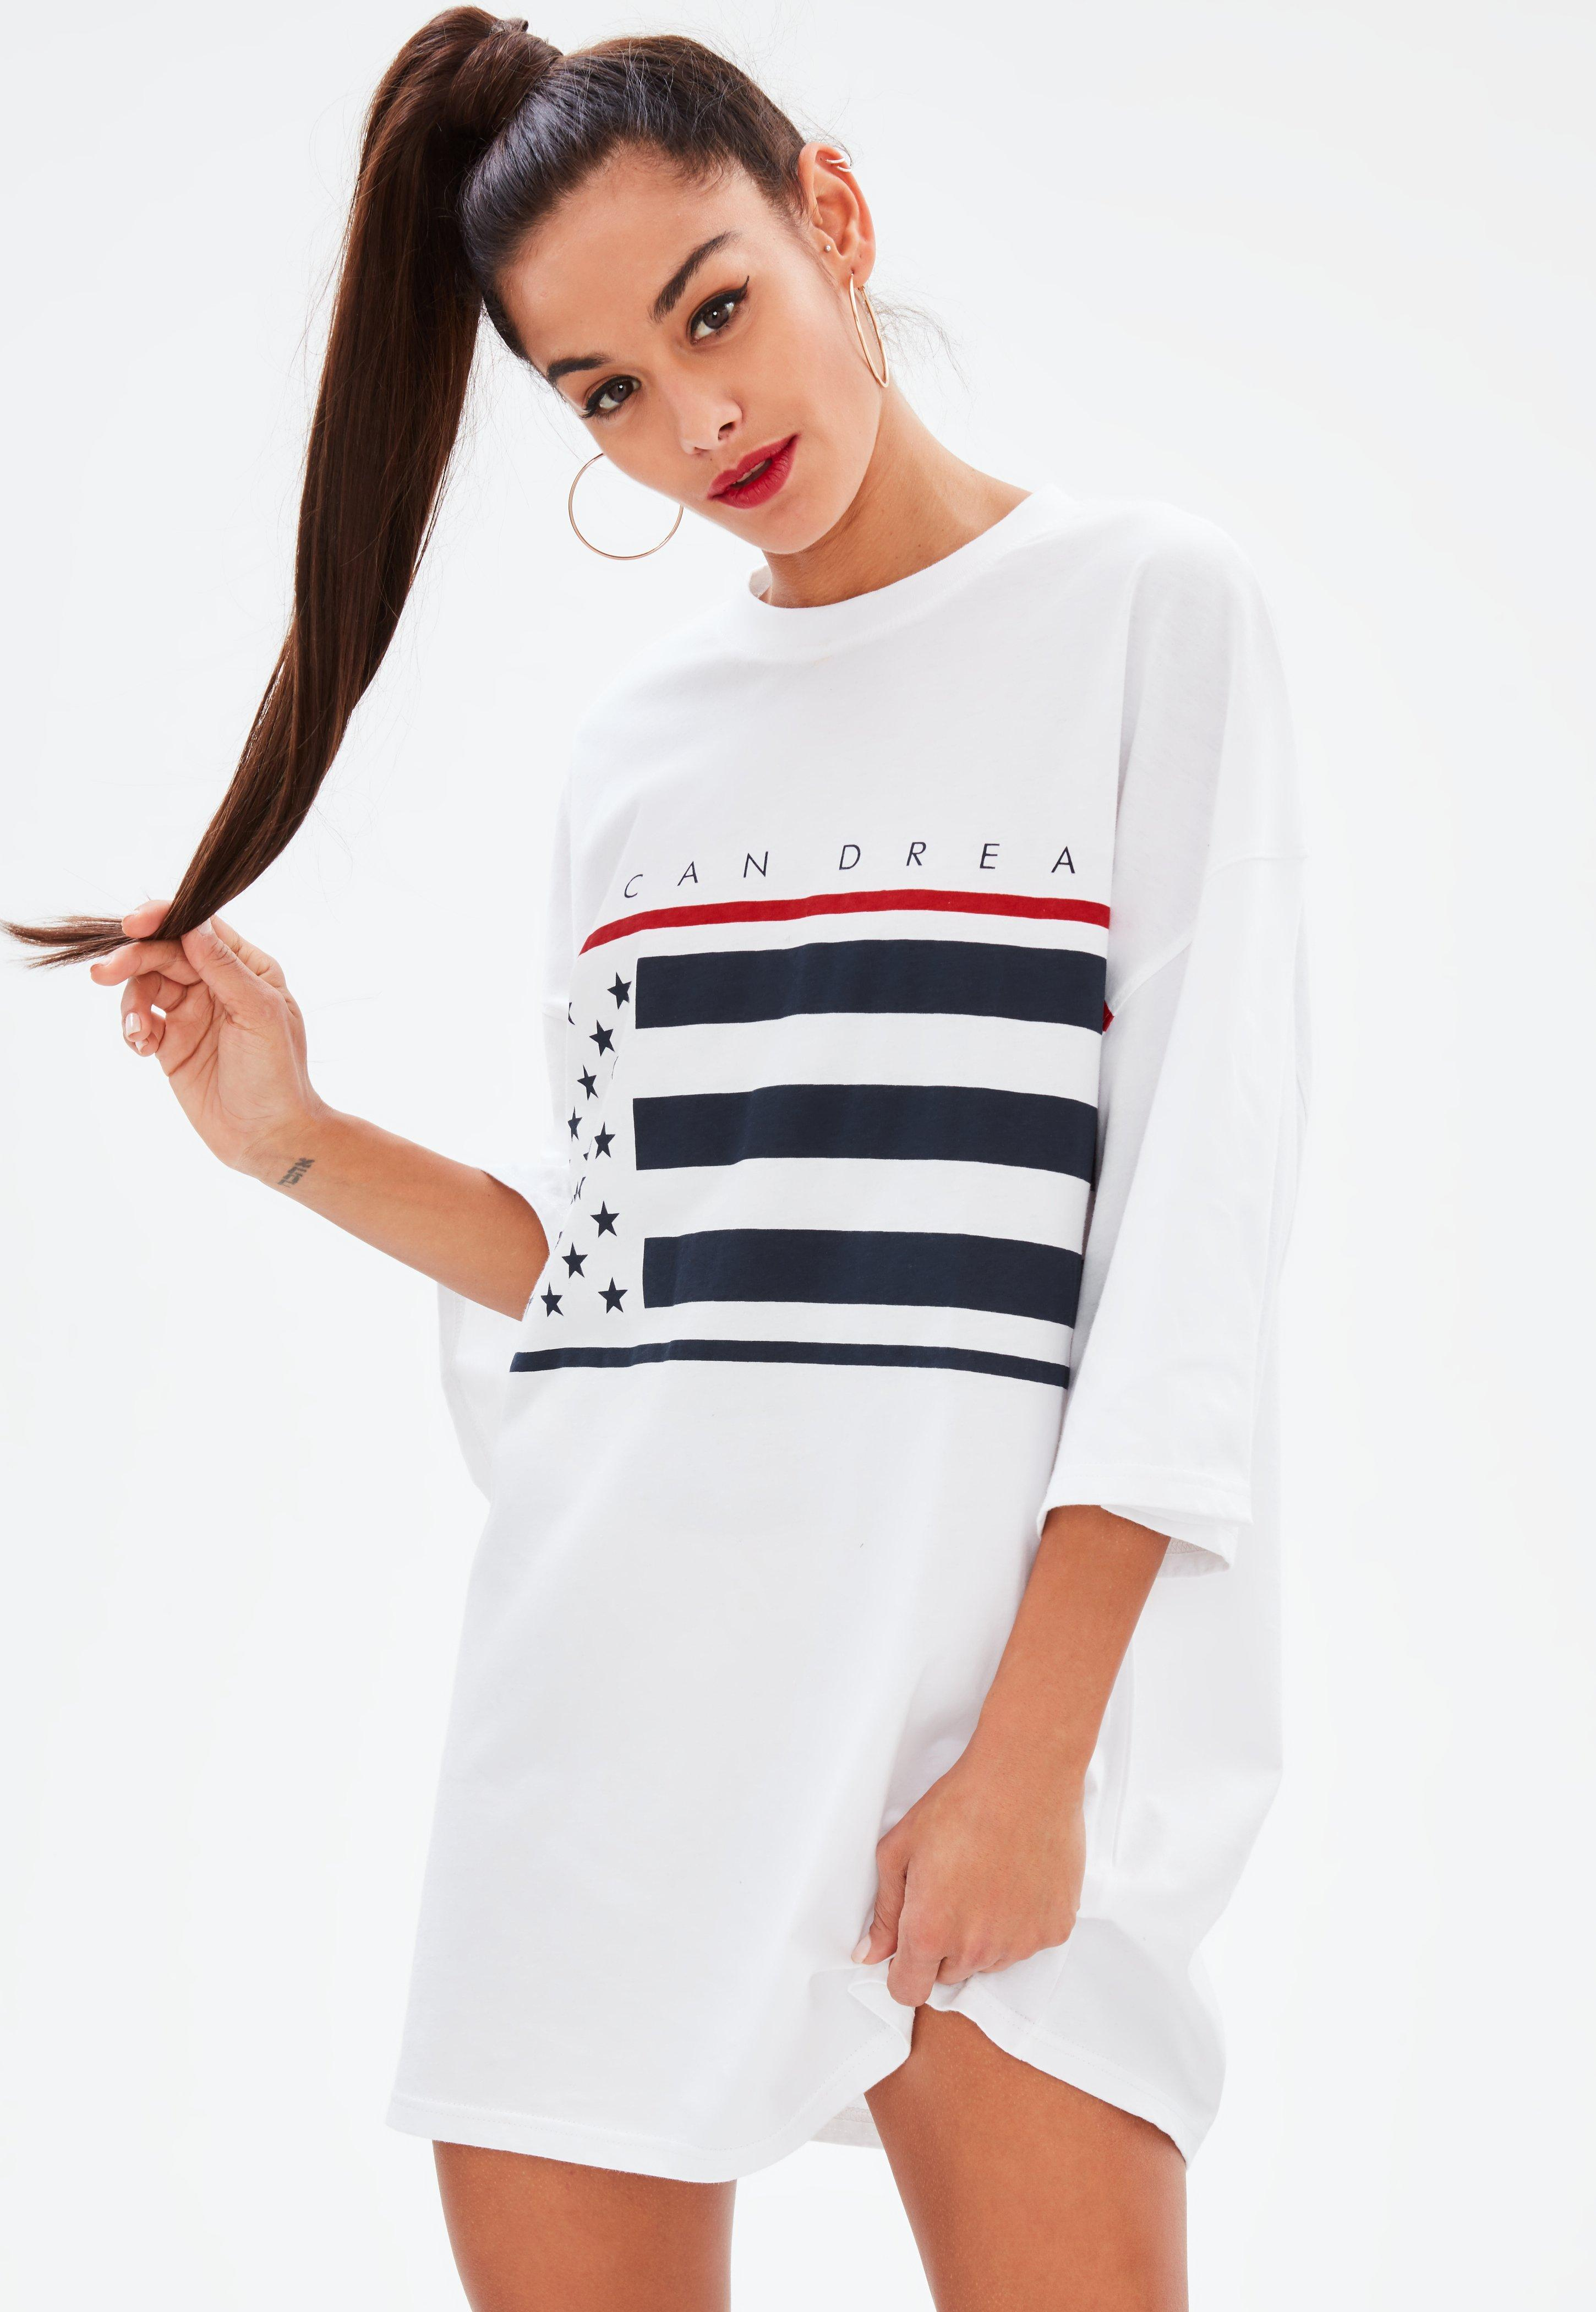 Not Today White Embroidered Oversized T Shirt Dress Pretty Little Thing Cheap Prices Authentic Discount Explore Sast For Sale Choice Online xSBymma